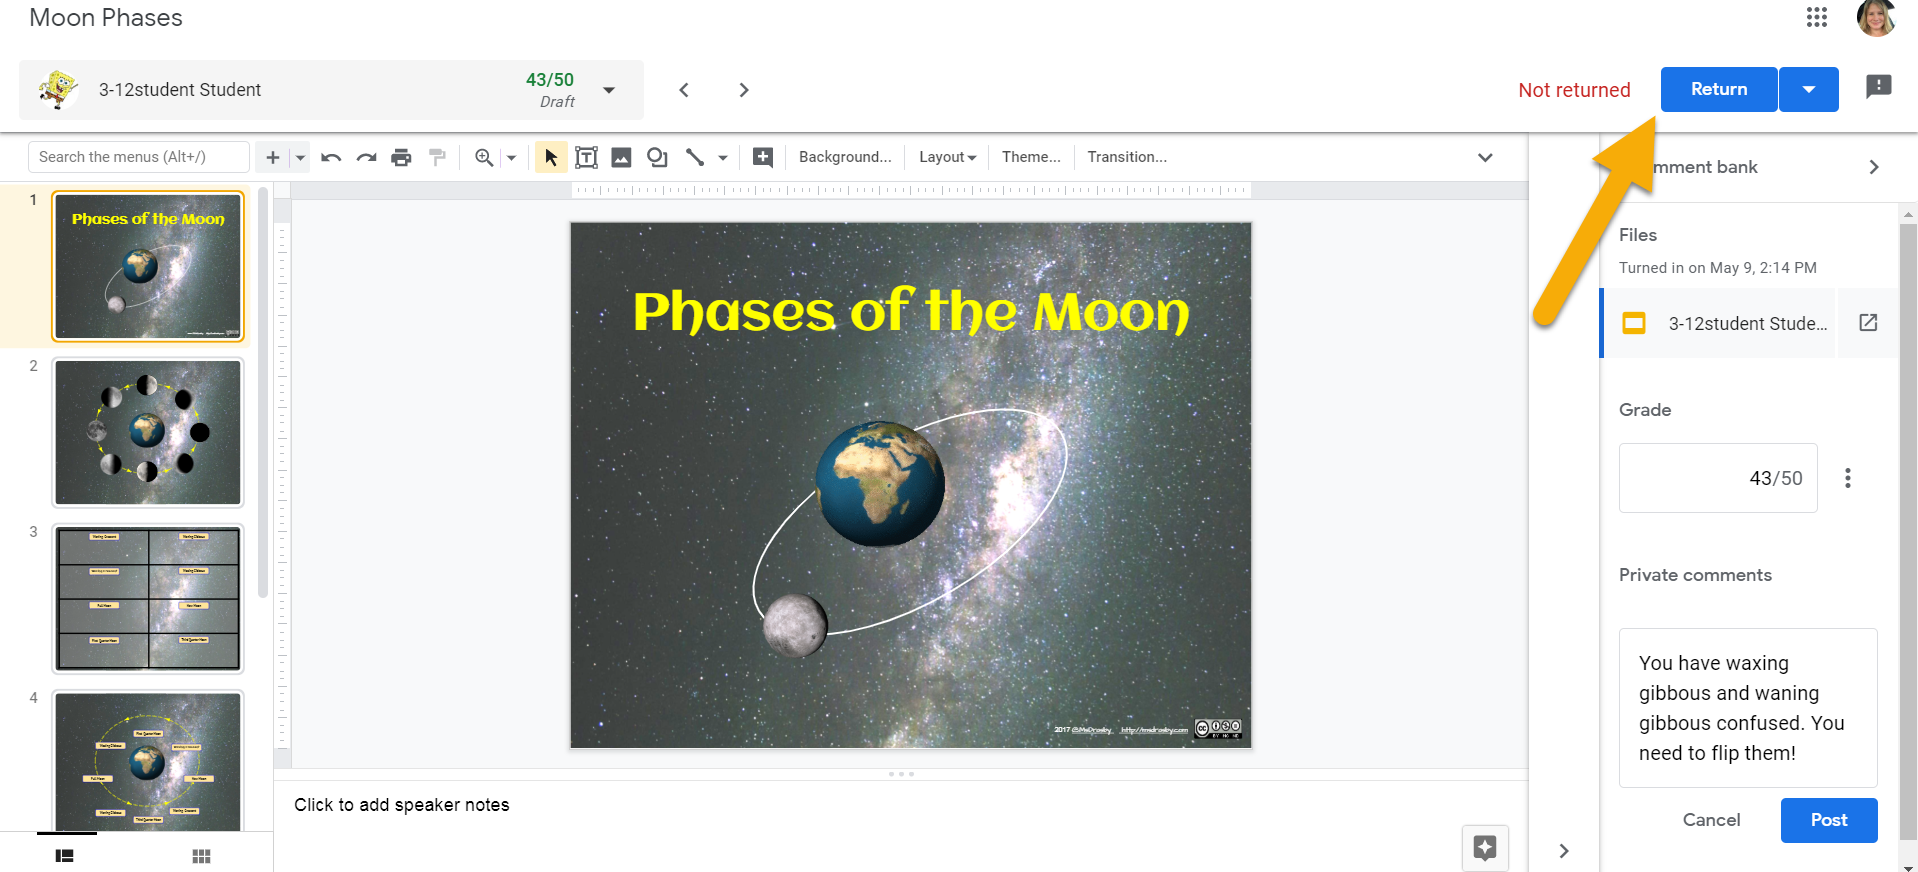 Google slide view with a yellow arrow pointing at the return button in the upper right.